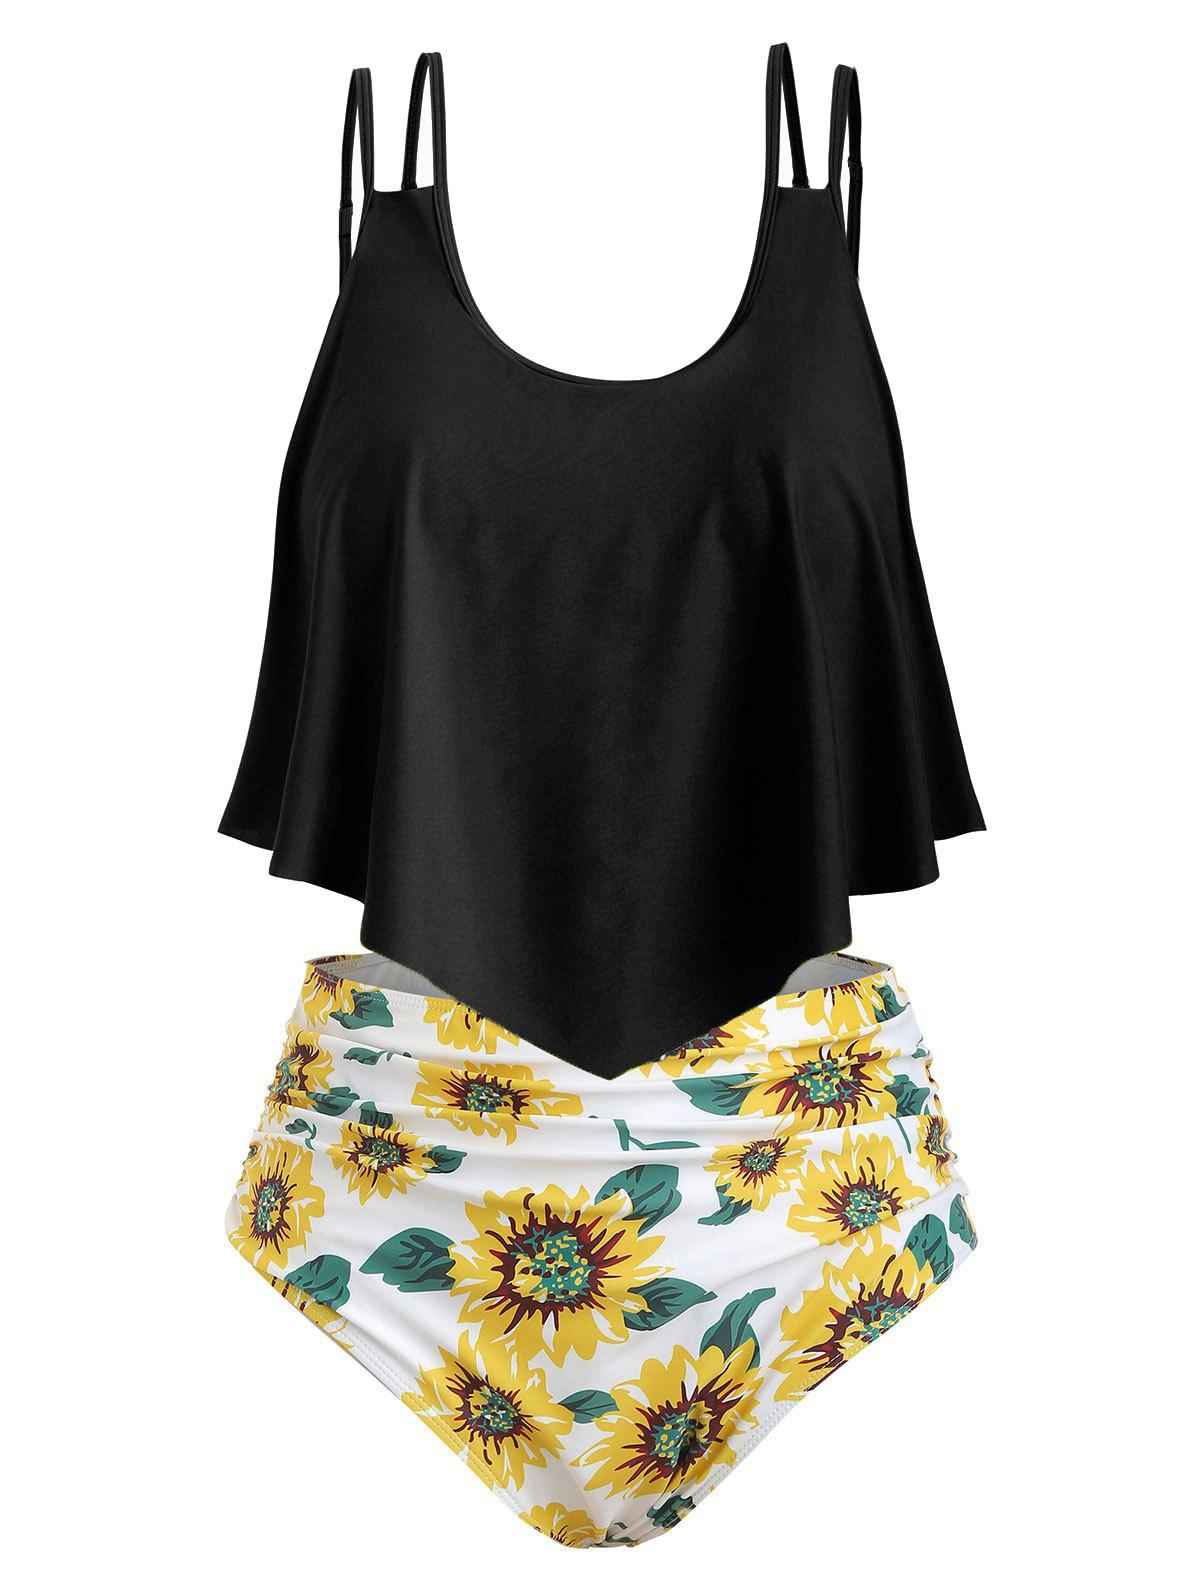 Contrast Overlay Sunflower Plus Size Tankini Set фото